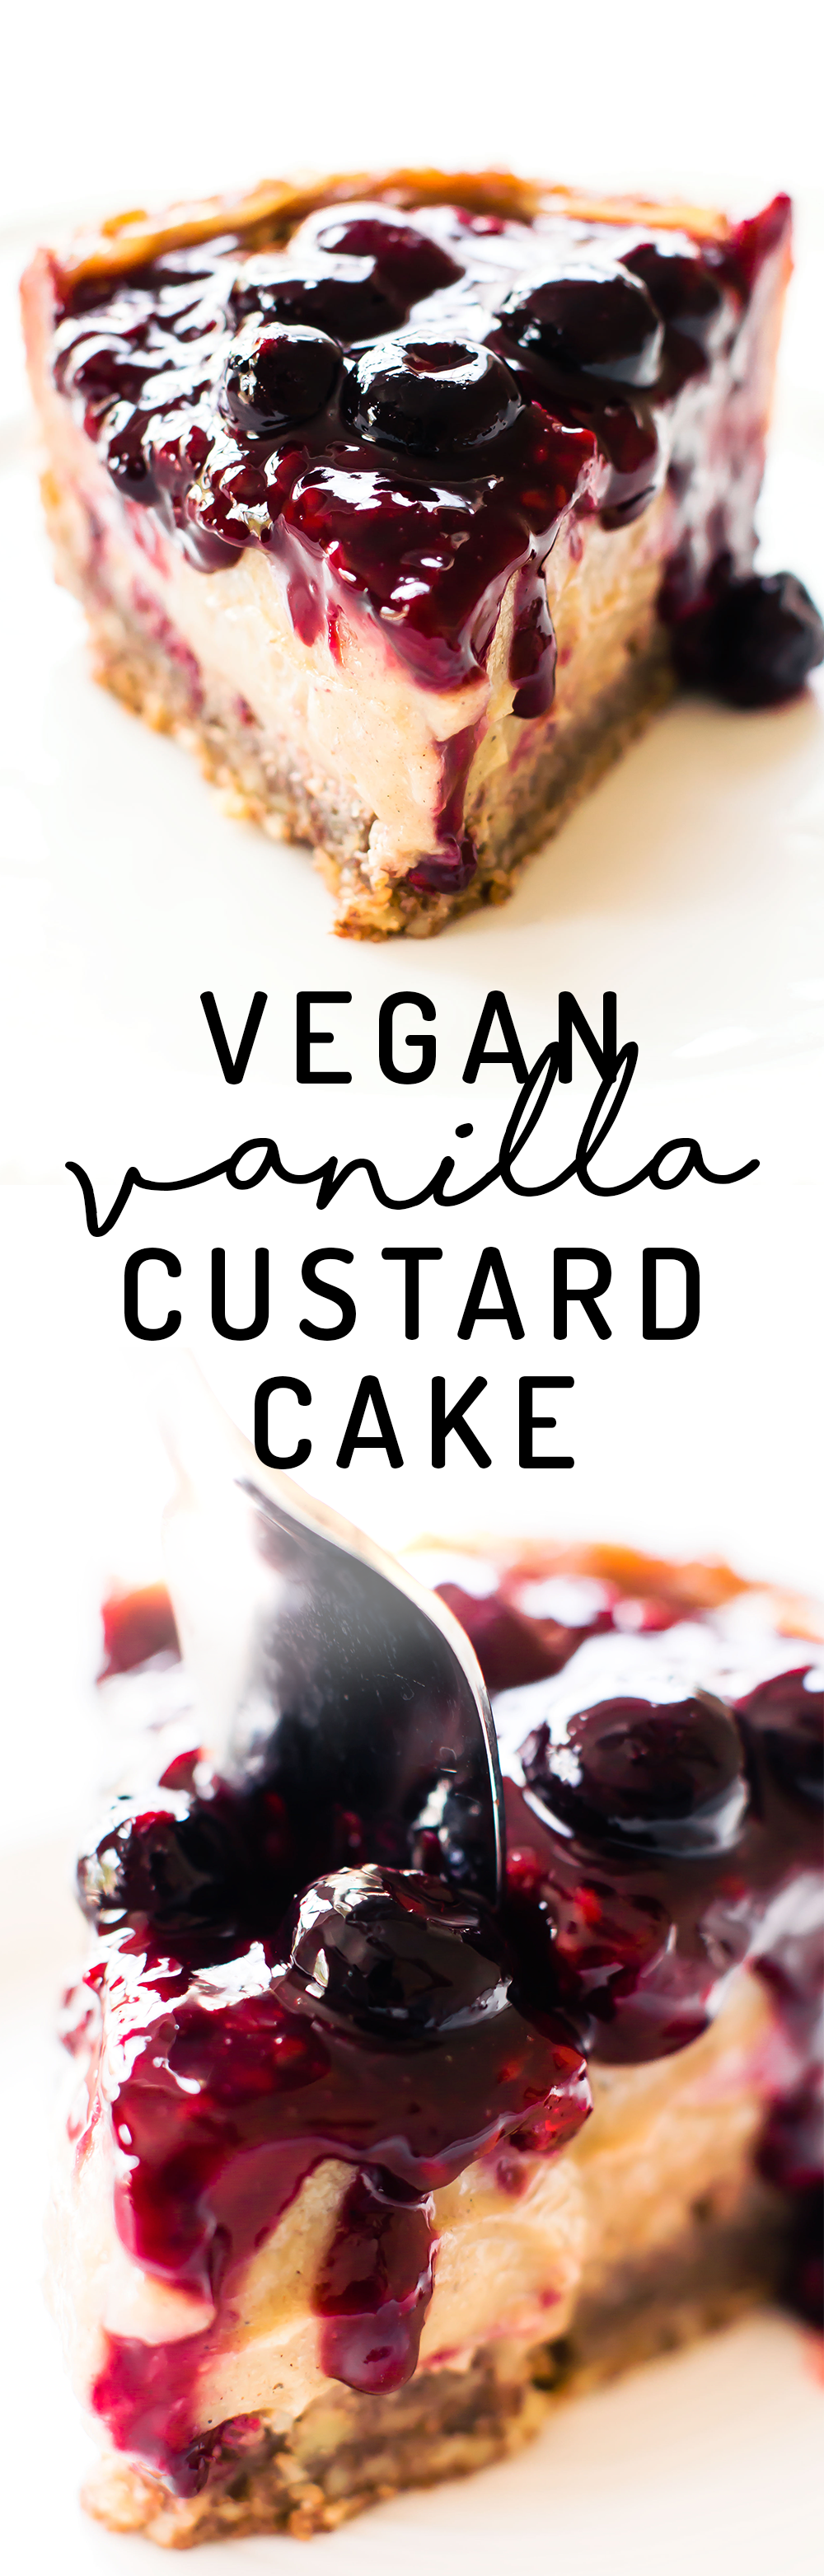 Dreamy meets healthy in this Vegan Vanilla Custard Cake with 2-ingredient pecan crust, low-fat vanilla bean filling, and easy berry compote to top! via @Natalie   Feasting on Fruit